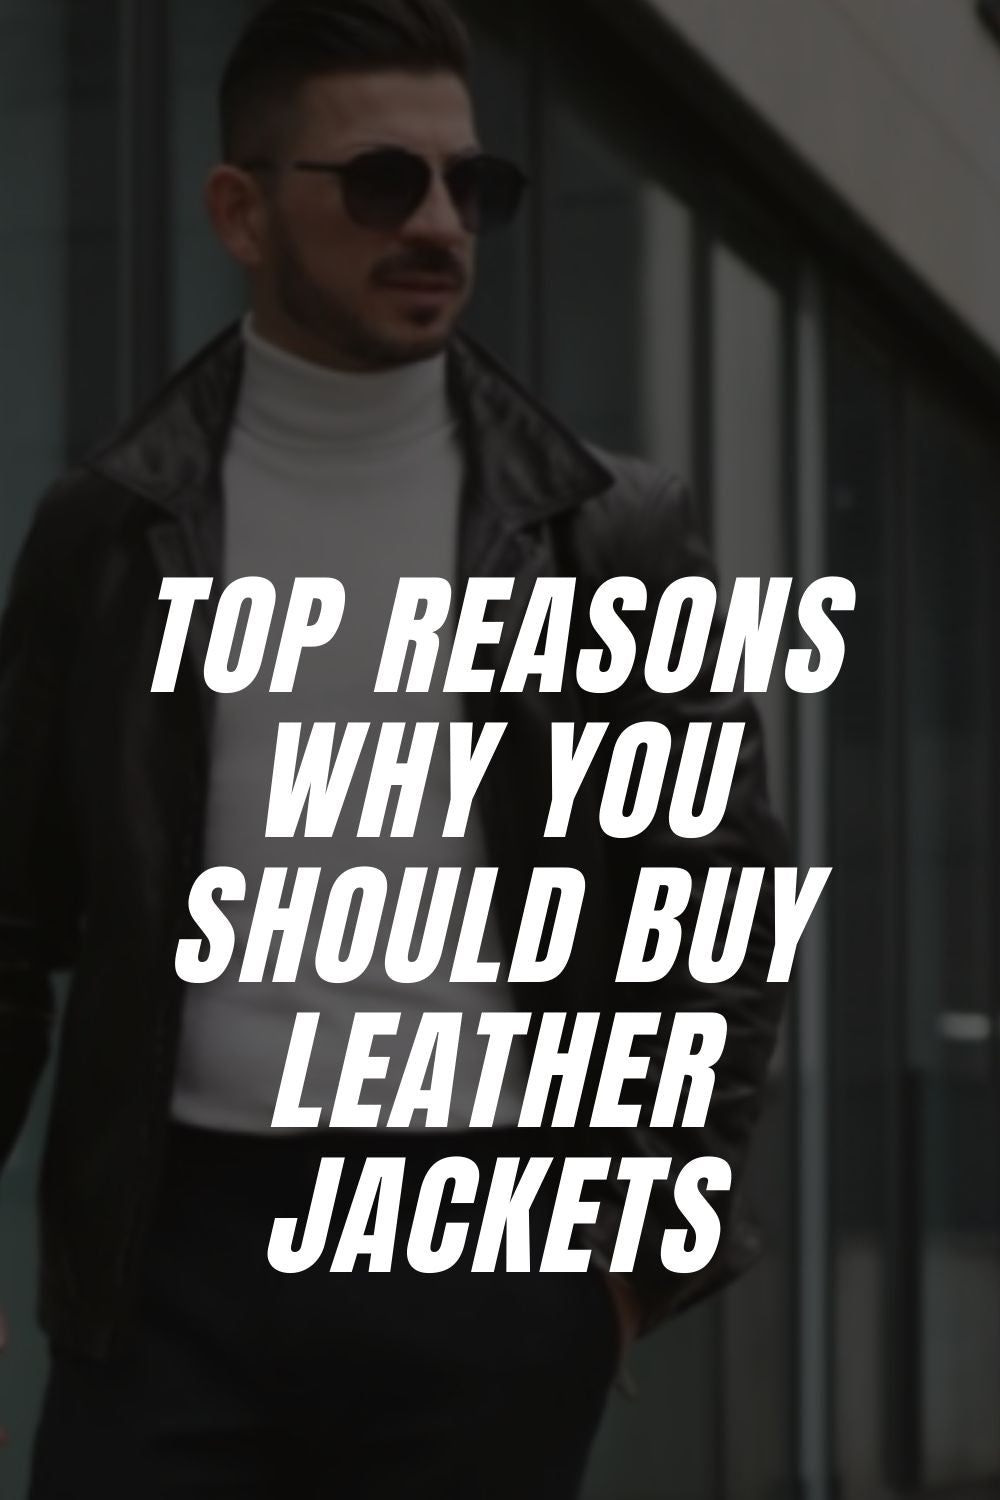 Top Reasons Why You Should Buy Leather Jackets